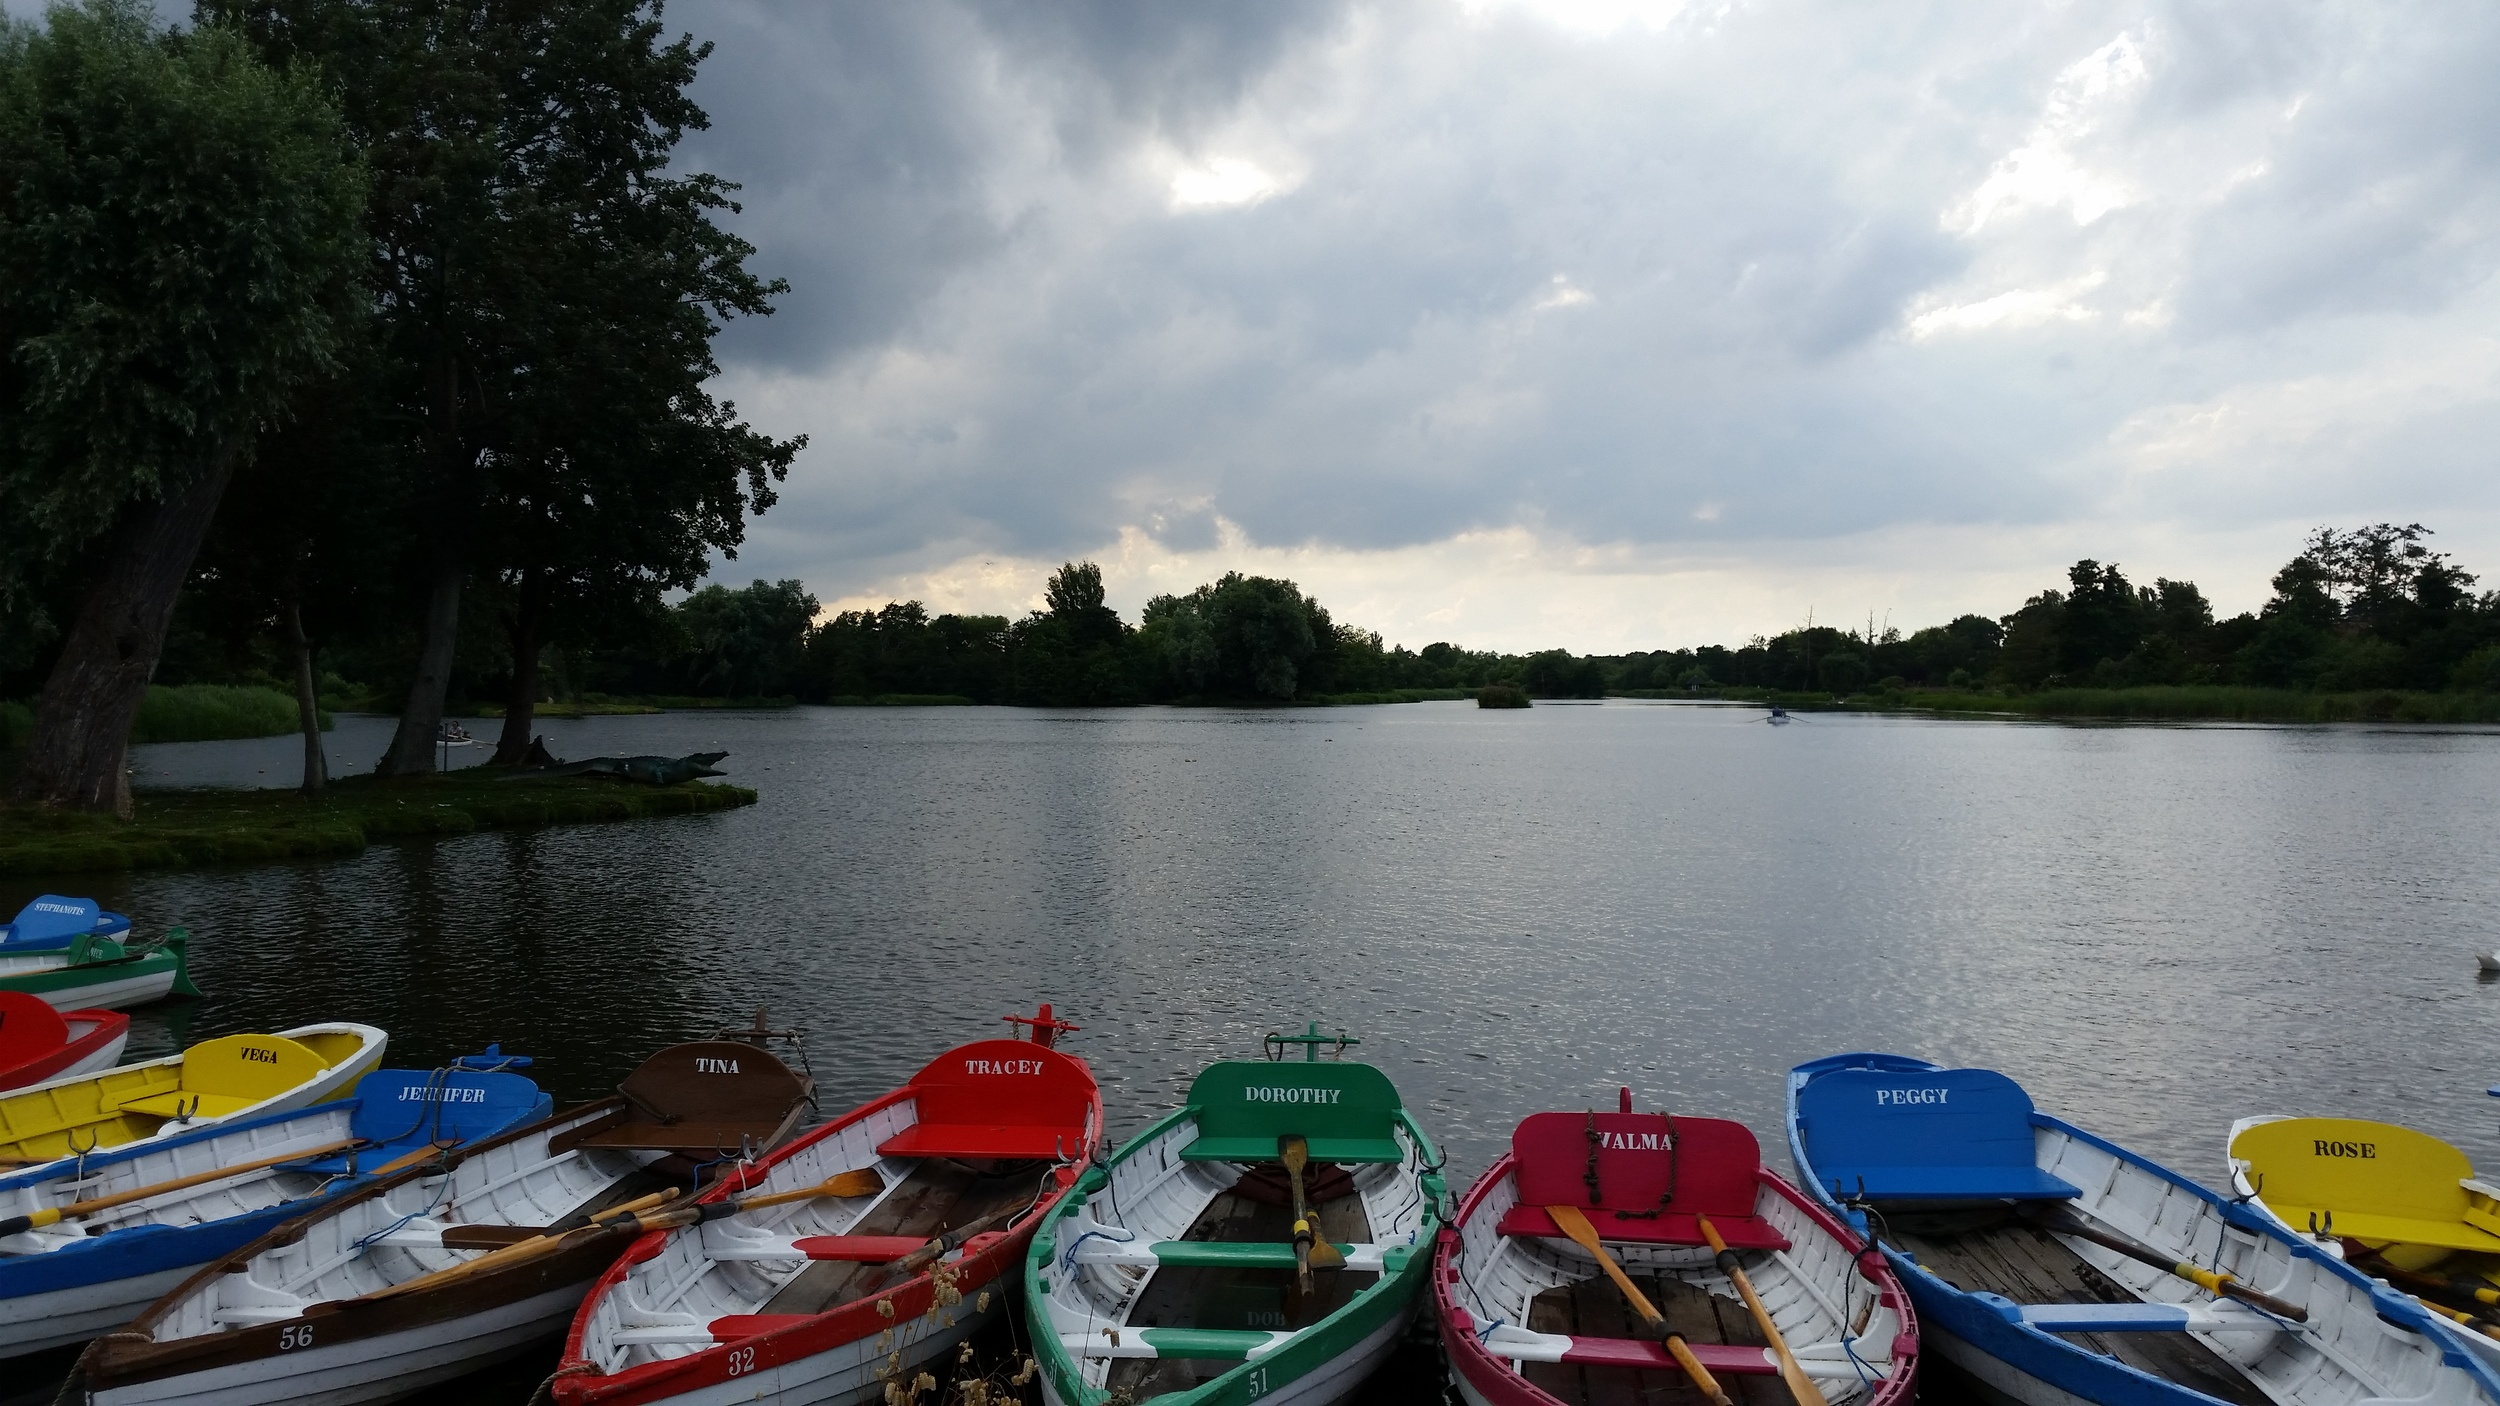 The Meare at Thorpeness, Suffolk